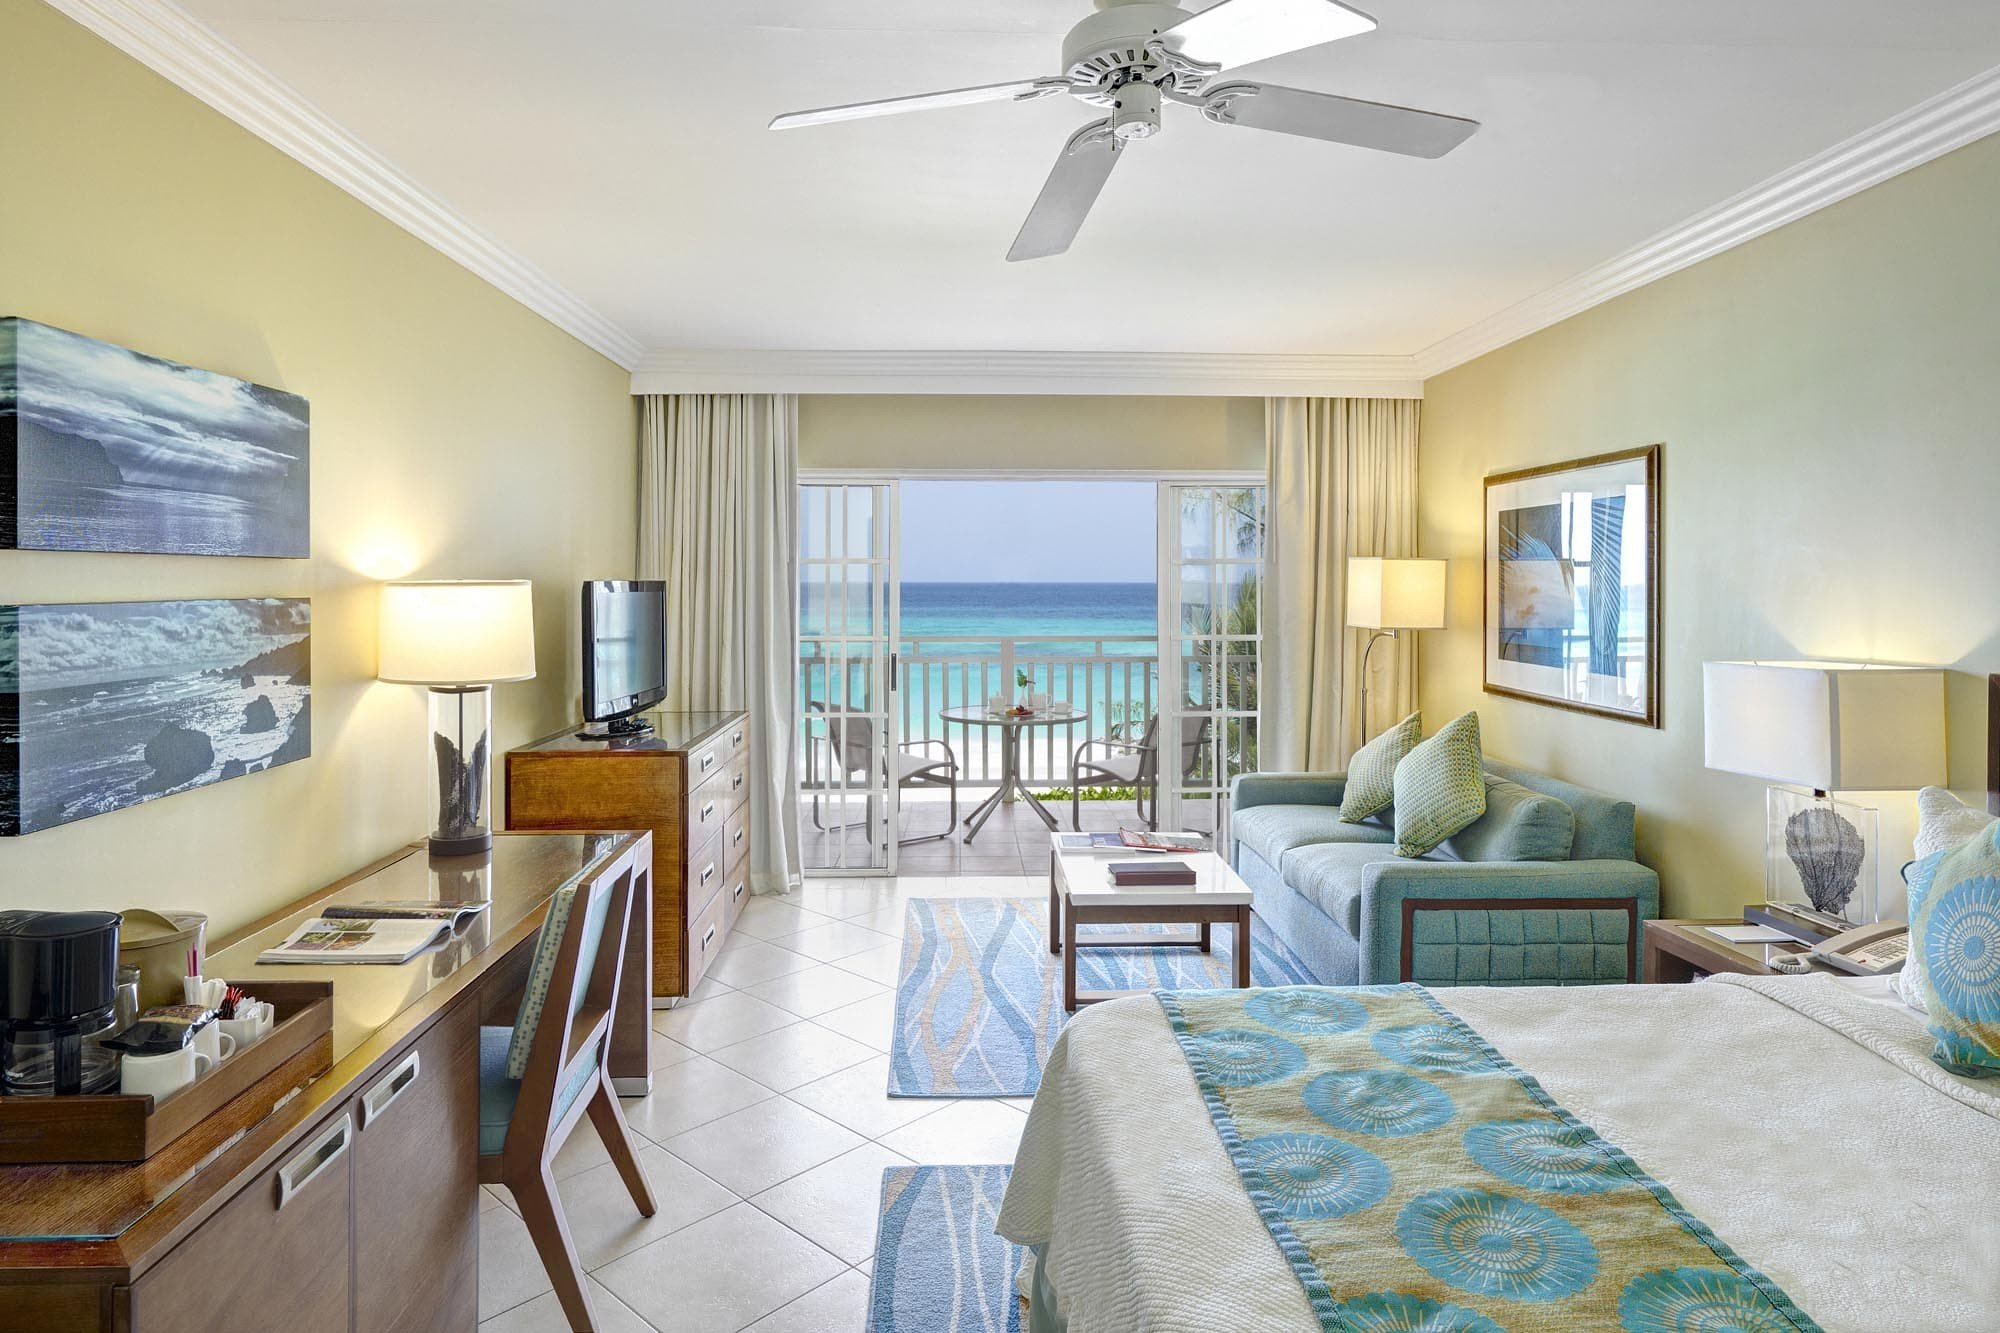 All-Inclusive Resorts Hotels indoor ceiling wall floor room Living window living room furniture interior design real estate Suite estate hotel Resort Bedroom penthouse apartment area wood decorated